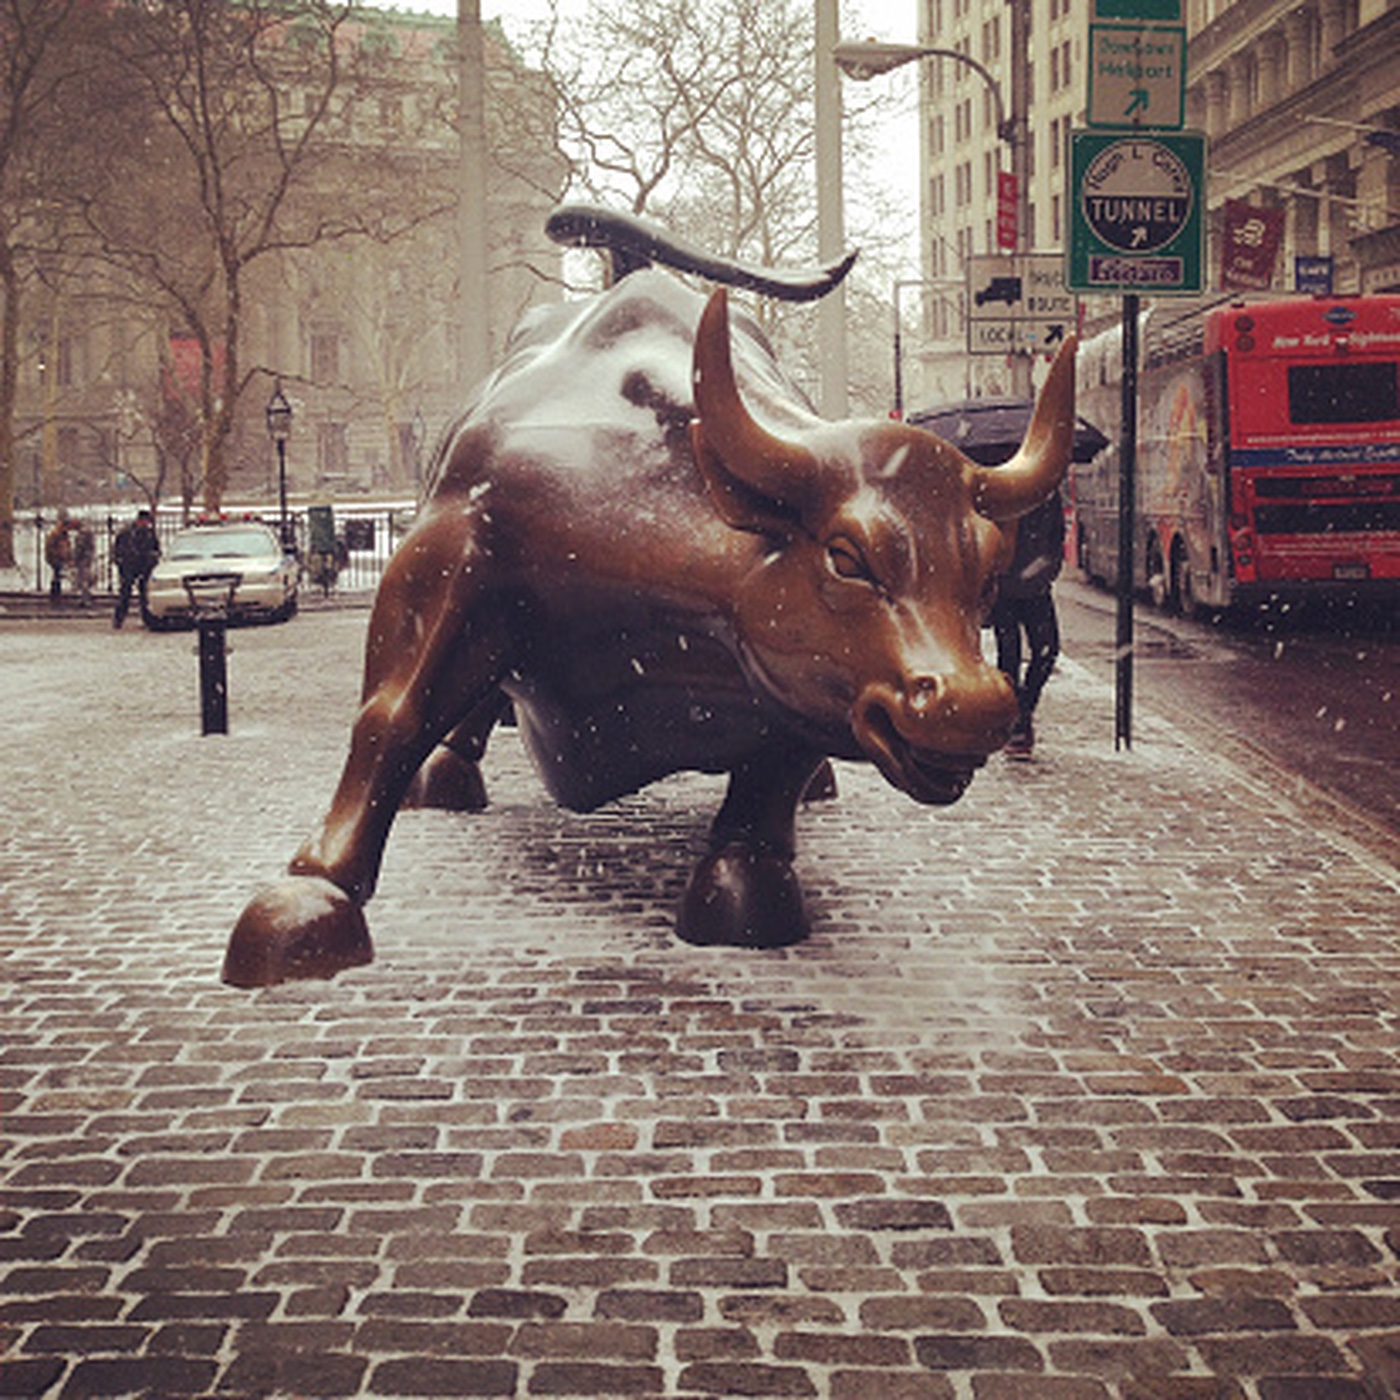 https://tickertapecdn.tdameritrade.com/assets/images/pages/md/Wall Street Morning